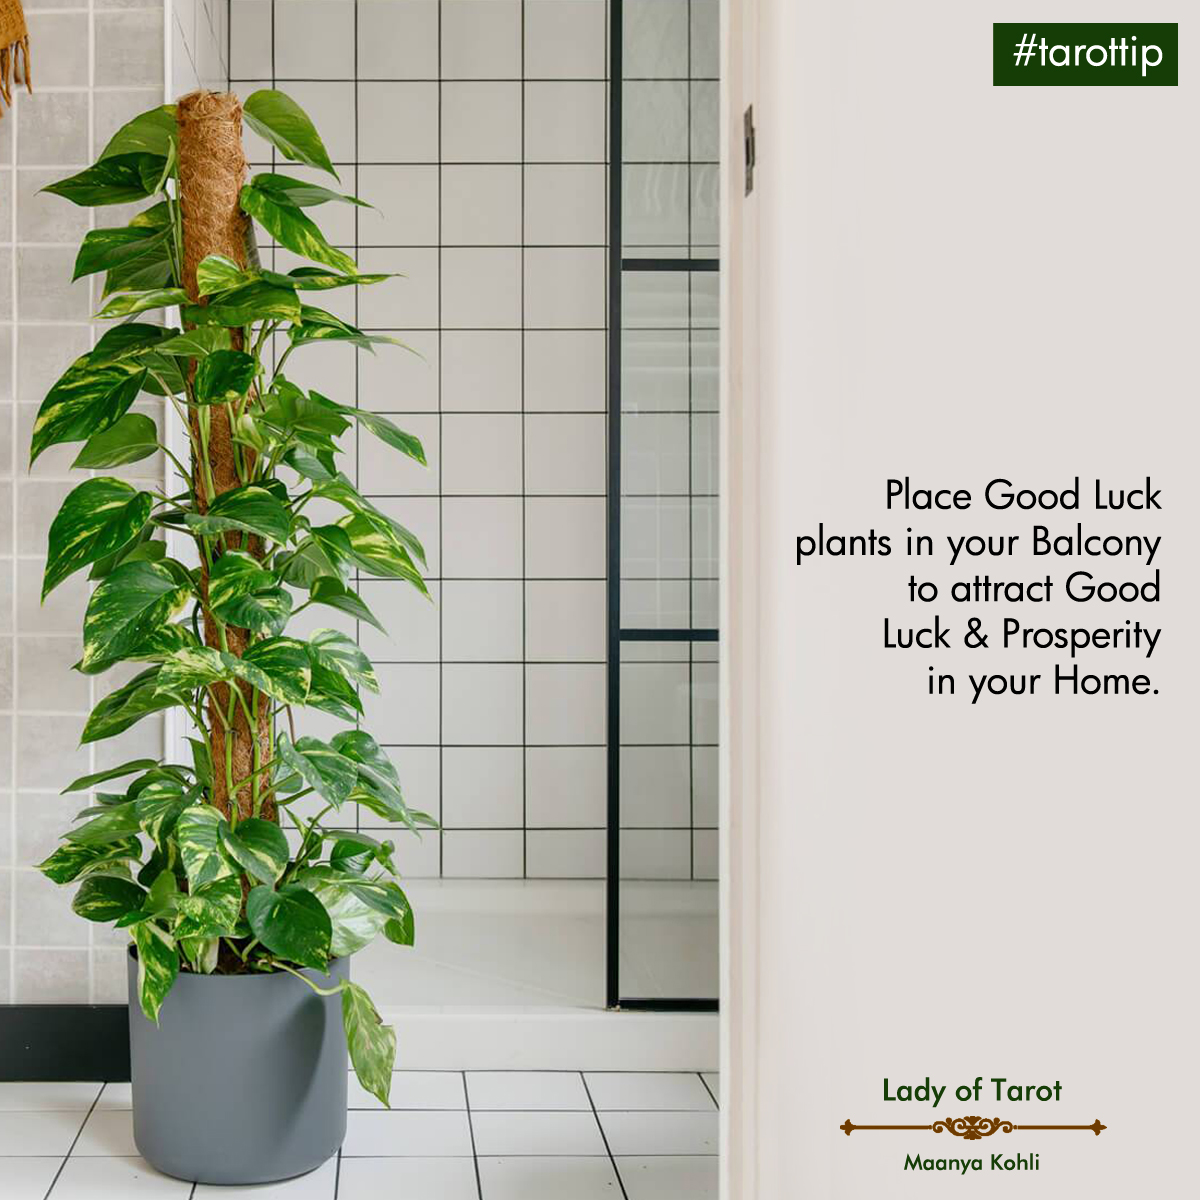 Tarot Tip for luck and prosperity: place good luck plants in your balcony to attract luck and prosperity in your home